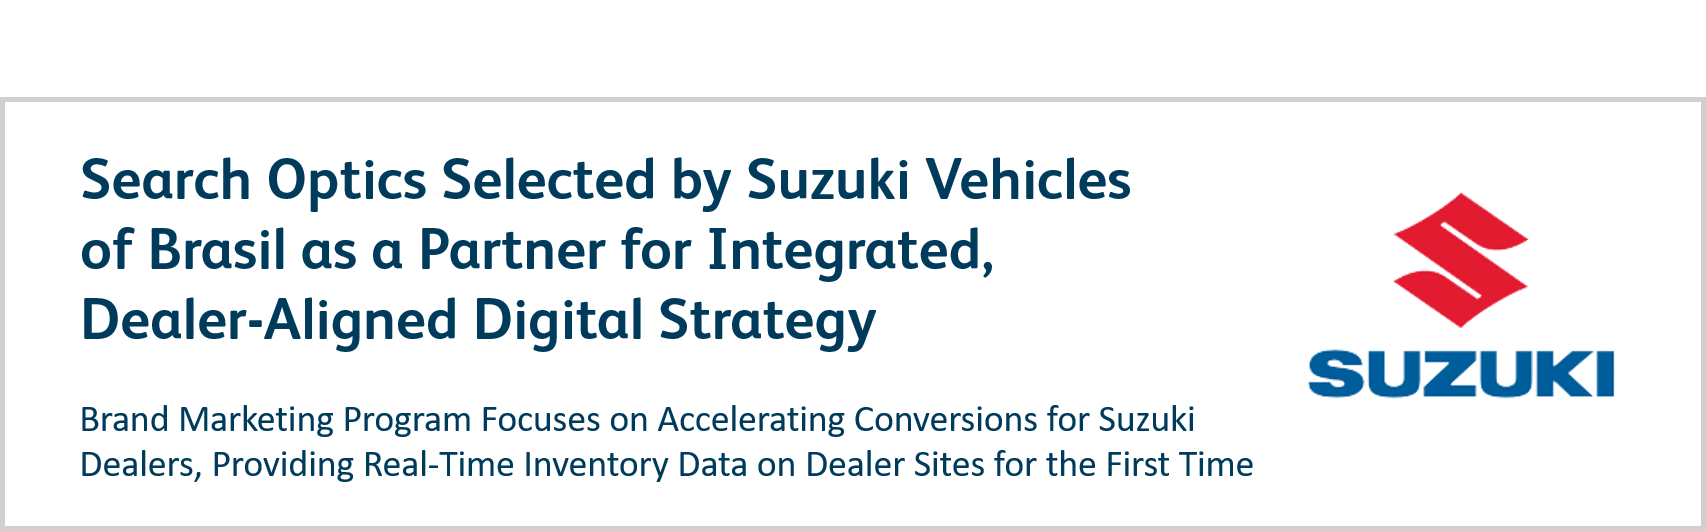 Search Optics Selected by Suzuki Vehicles of Brasil as a Partner for Integrated, Dealer-Aligned Digital Strategy